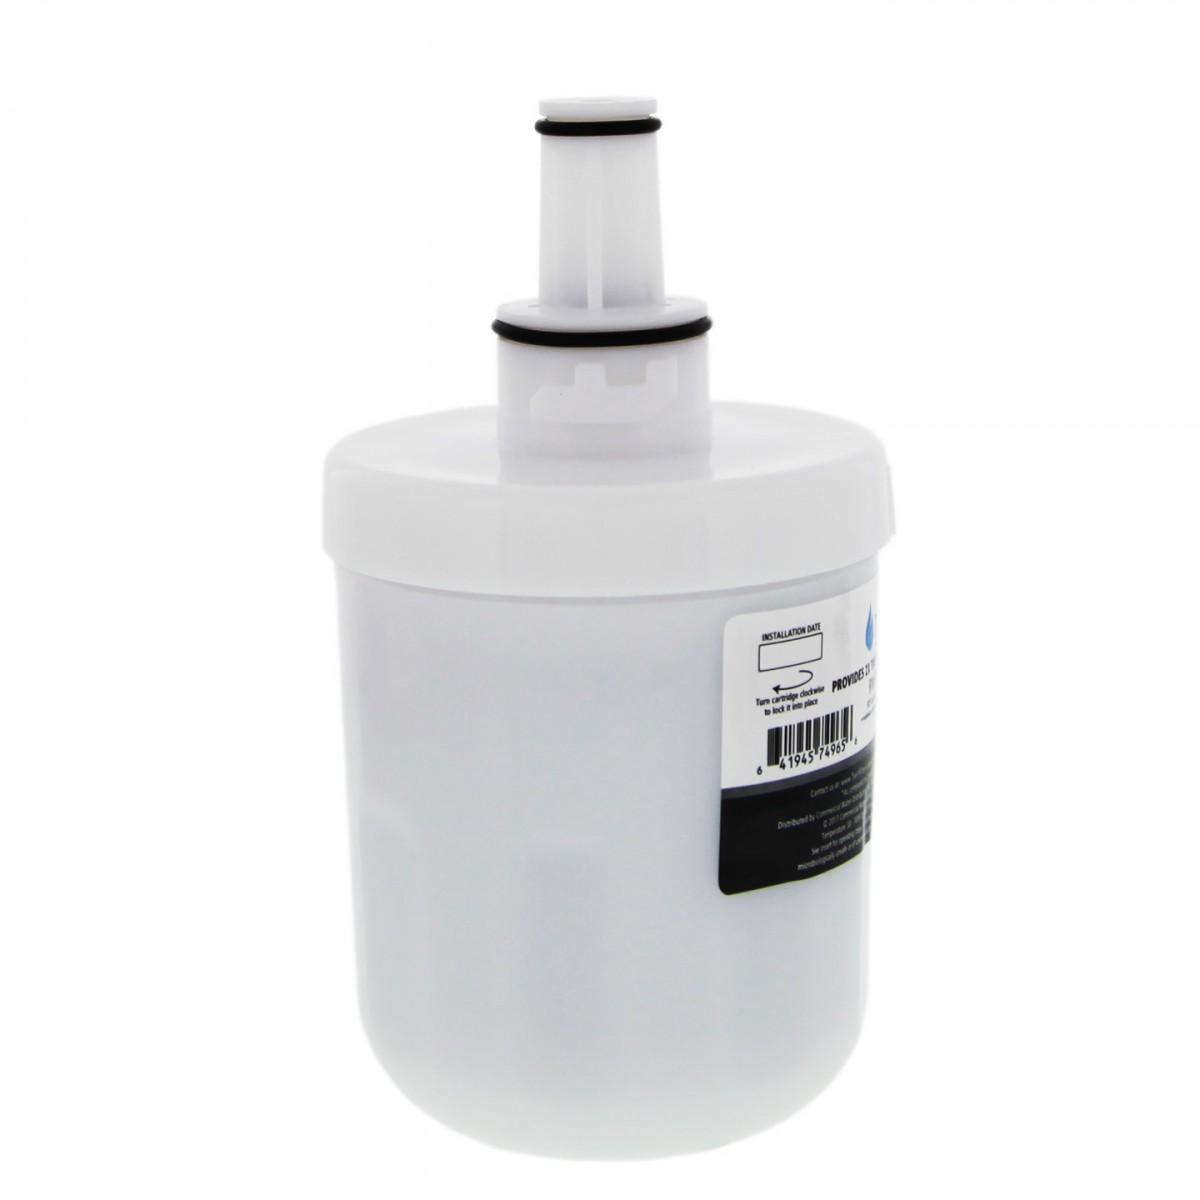 Da29 00003g Samsung Comparable Refrigerator Water Filter